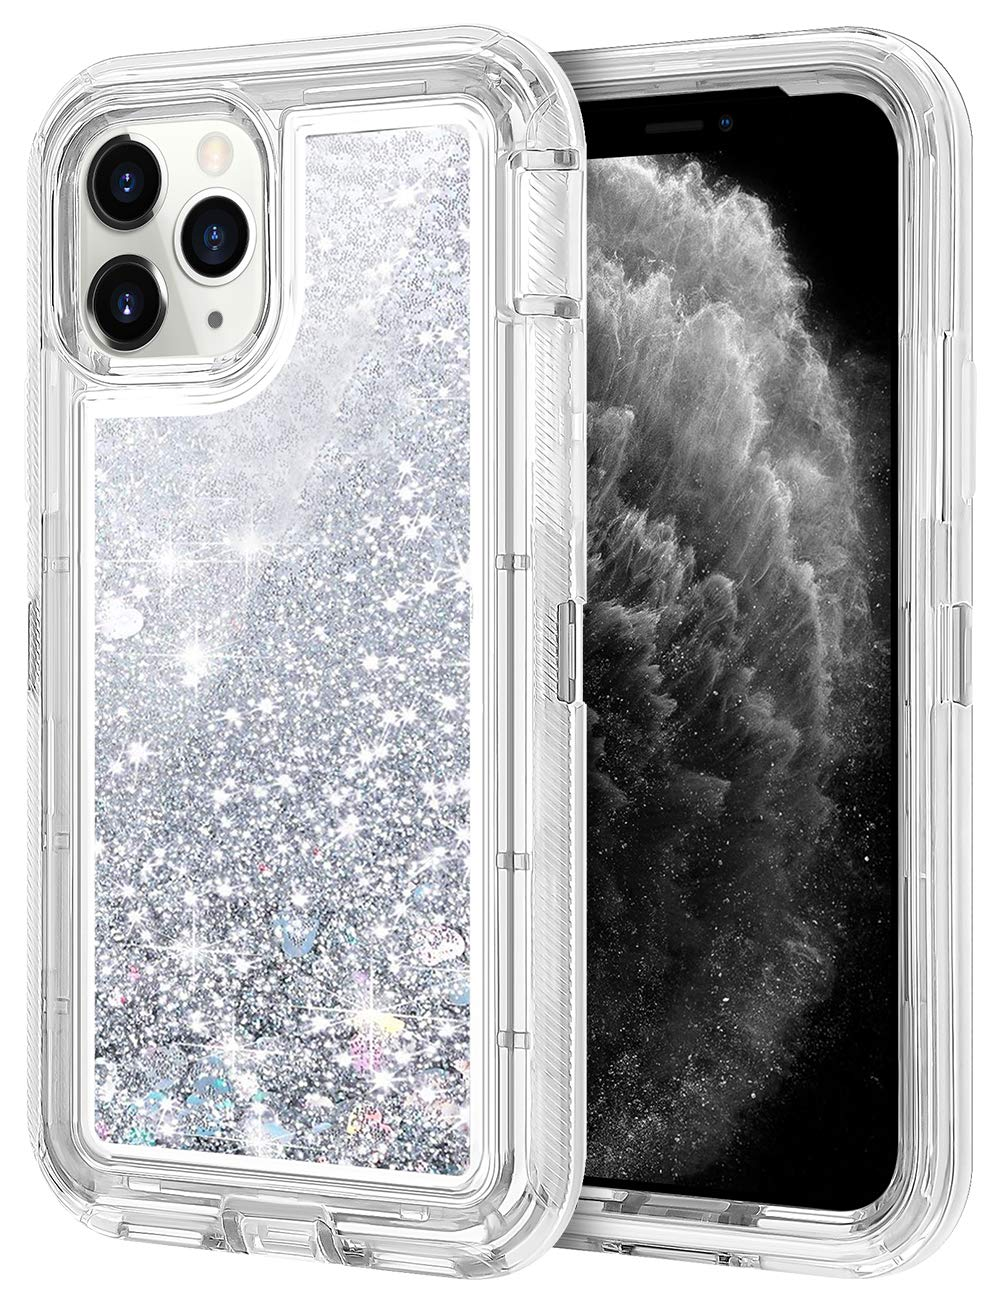 JAKPAK Case for iPhone 11 Pro Max Case for Girls Women Glitter Sparkle Case Heavy Duty Shockproof Protective Shell Dual Layer PC Bumper TPU Back Case for iPhone 11 Pro Max 6.5 inches Silver